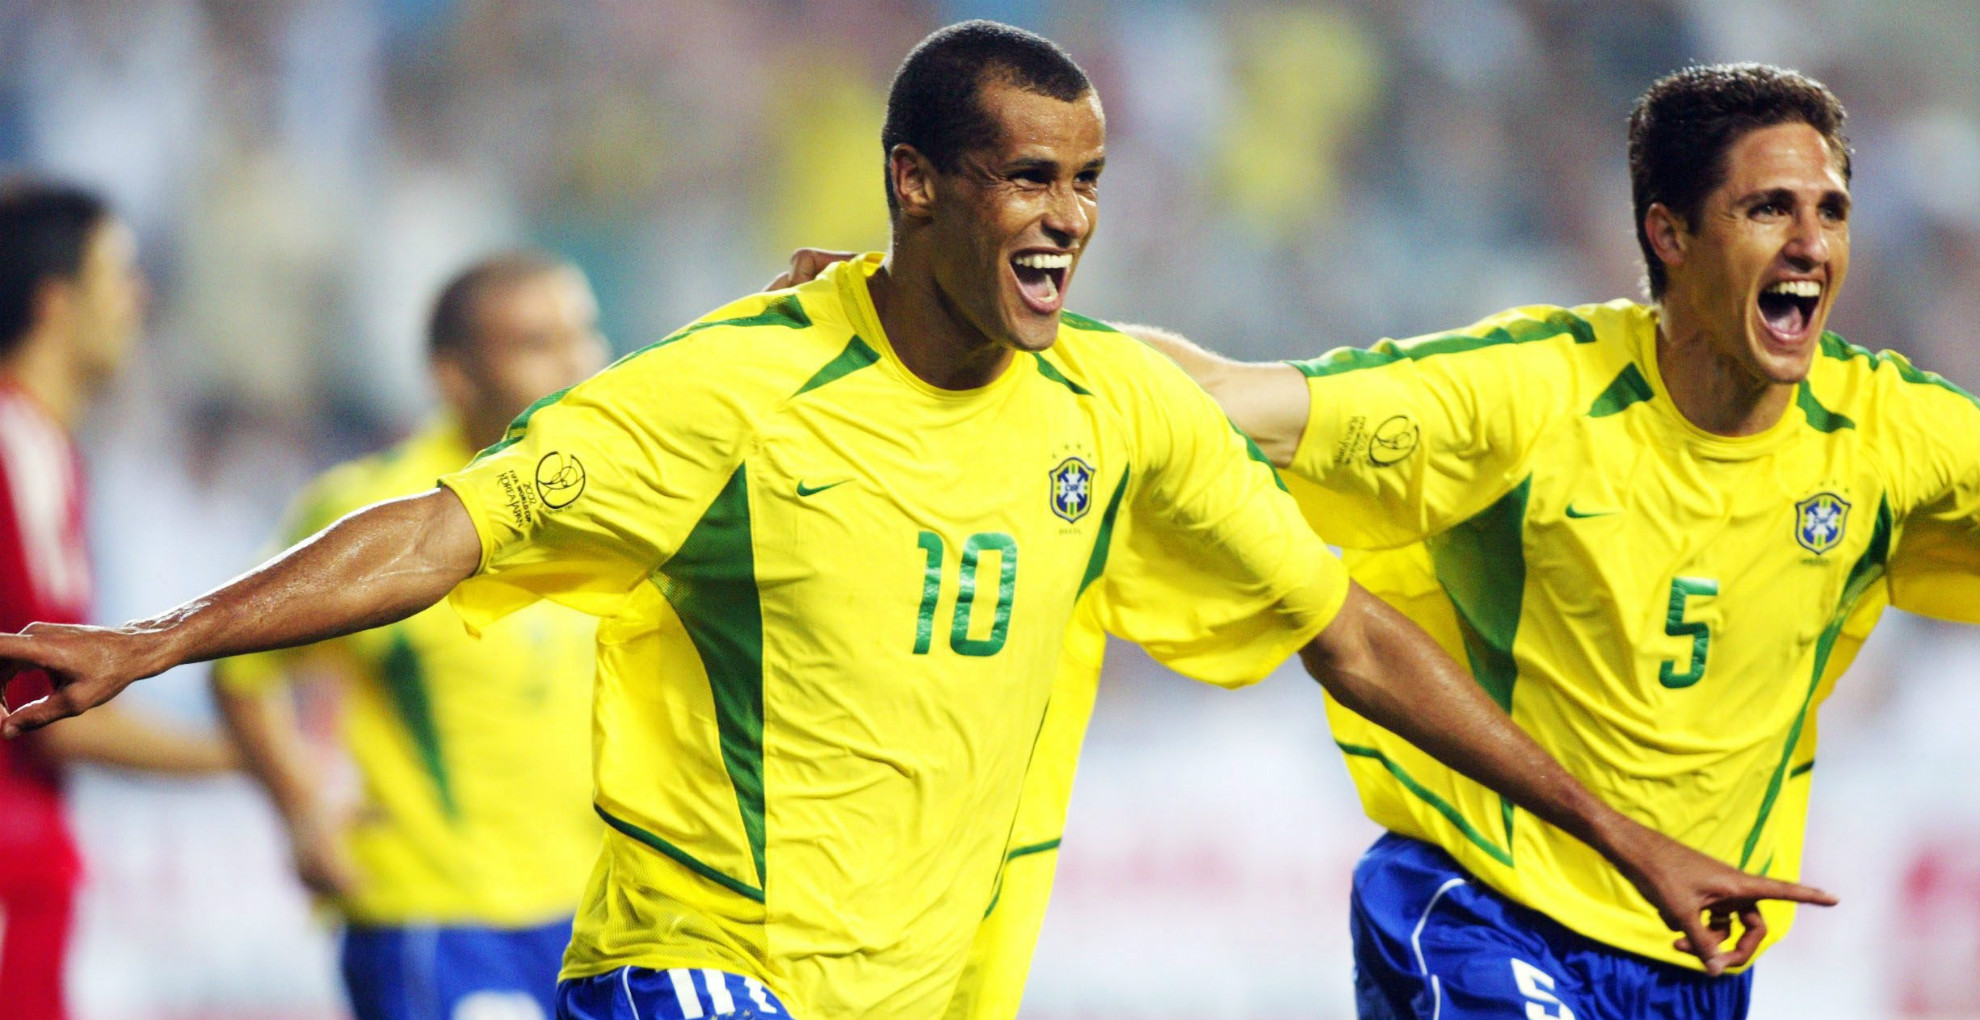 Rivaldo - Brazil 2 x 1 Turkey - World Cup 2002